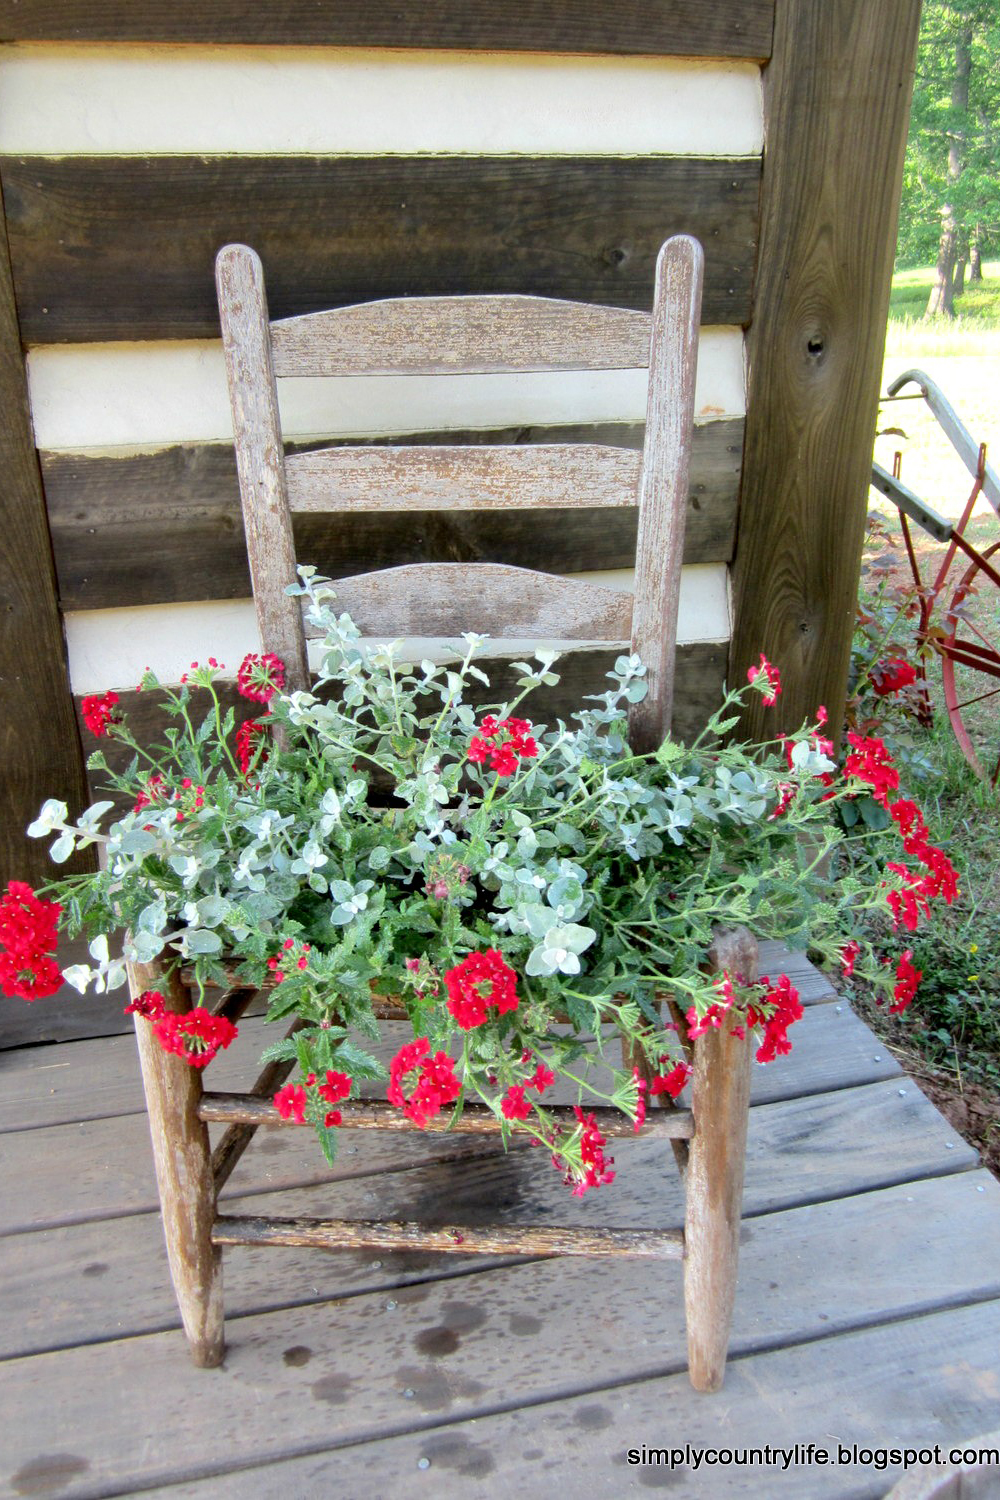 How To Repurpose Old Furniture 13 creative ways to repurpose old chairs - repurposed furniture ideas